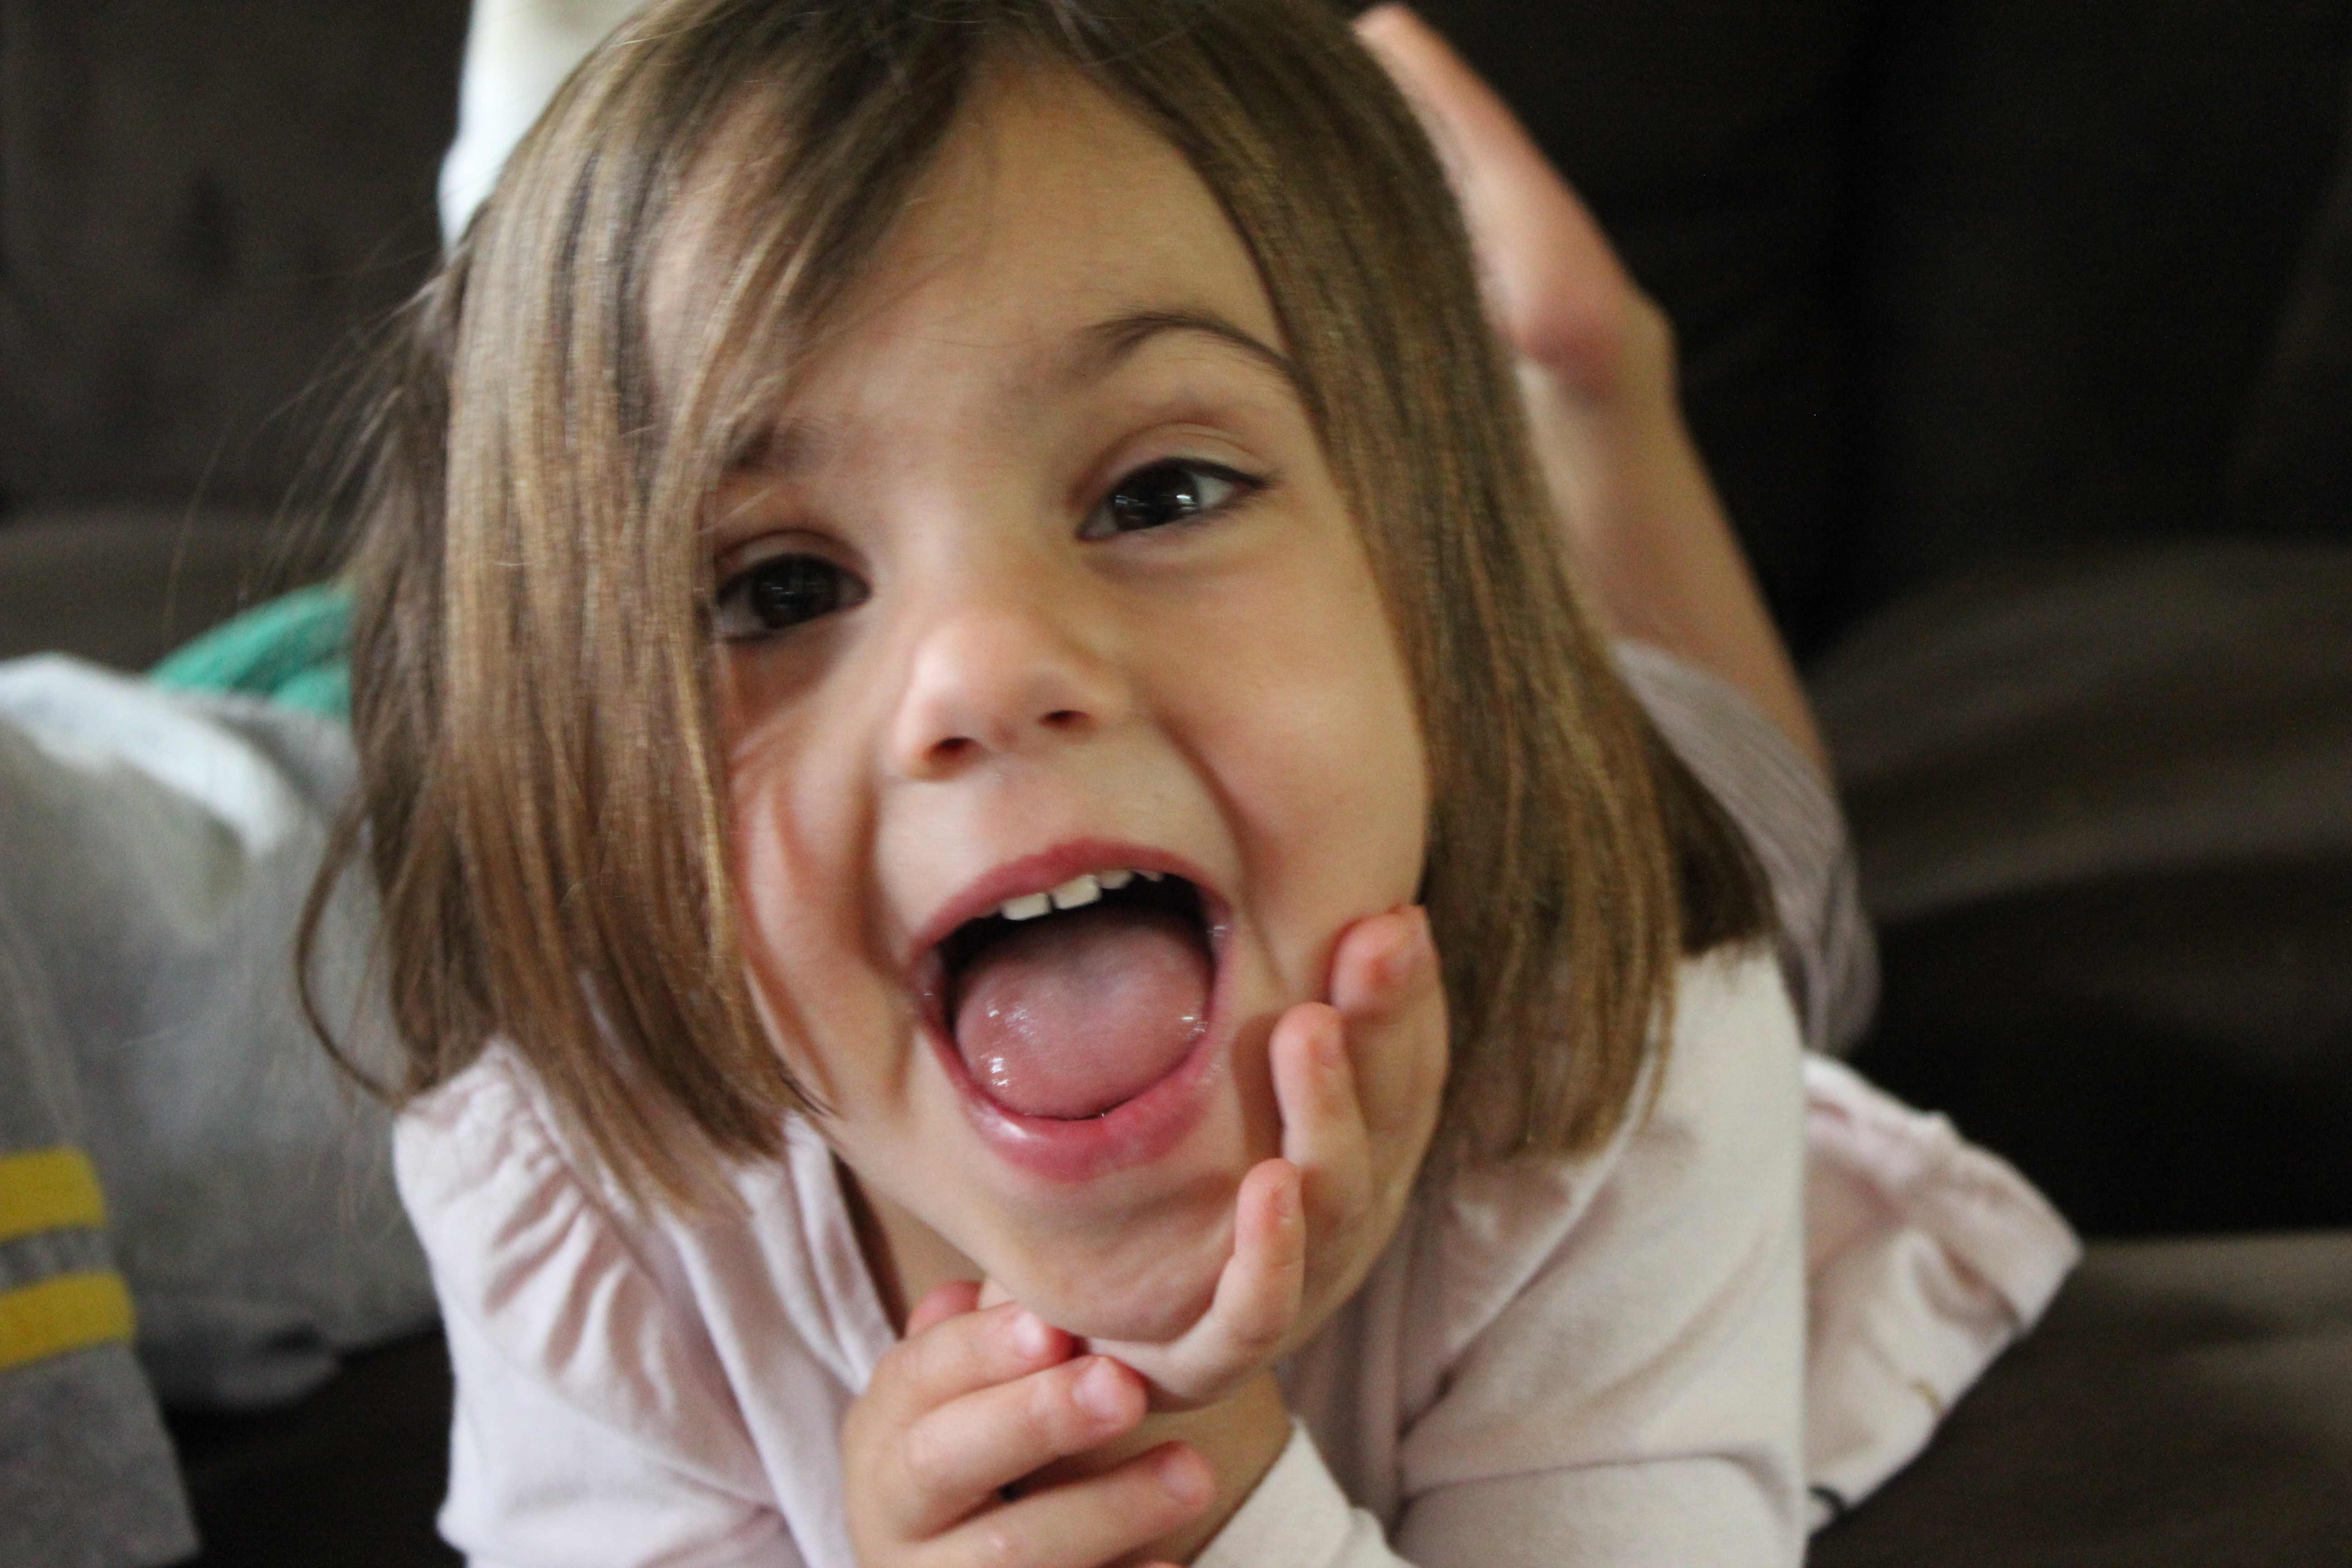 Pictures of tongue tied toddlers